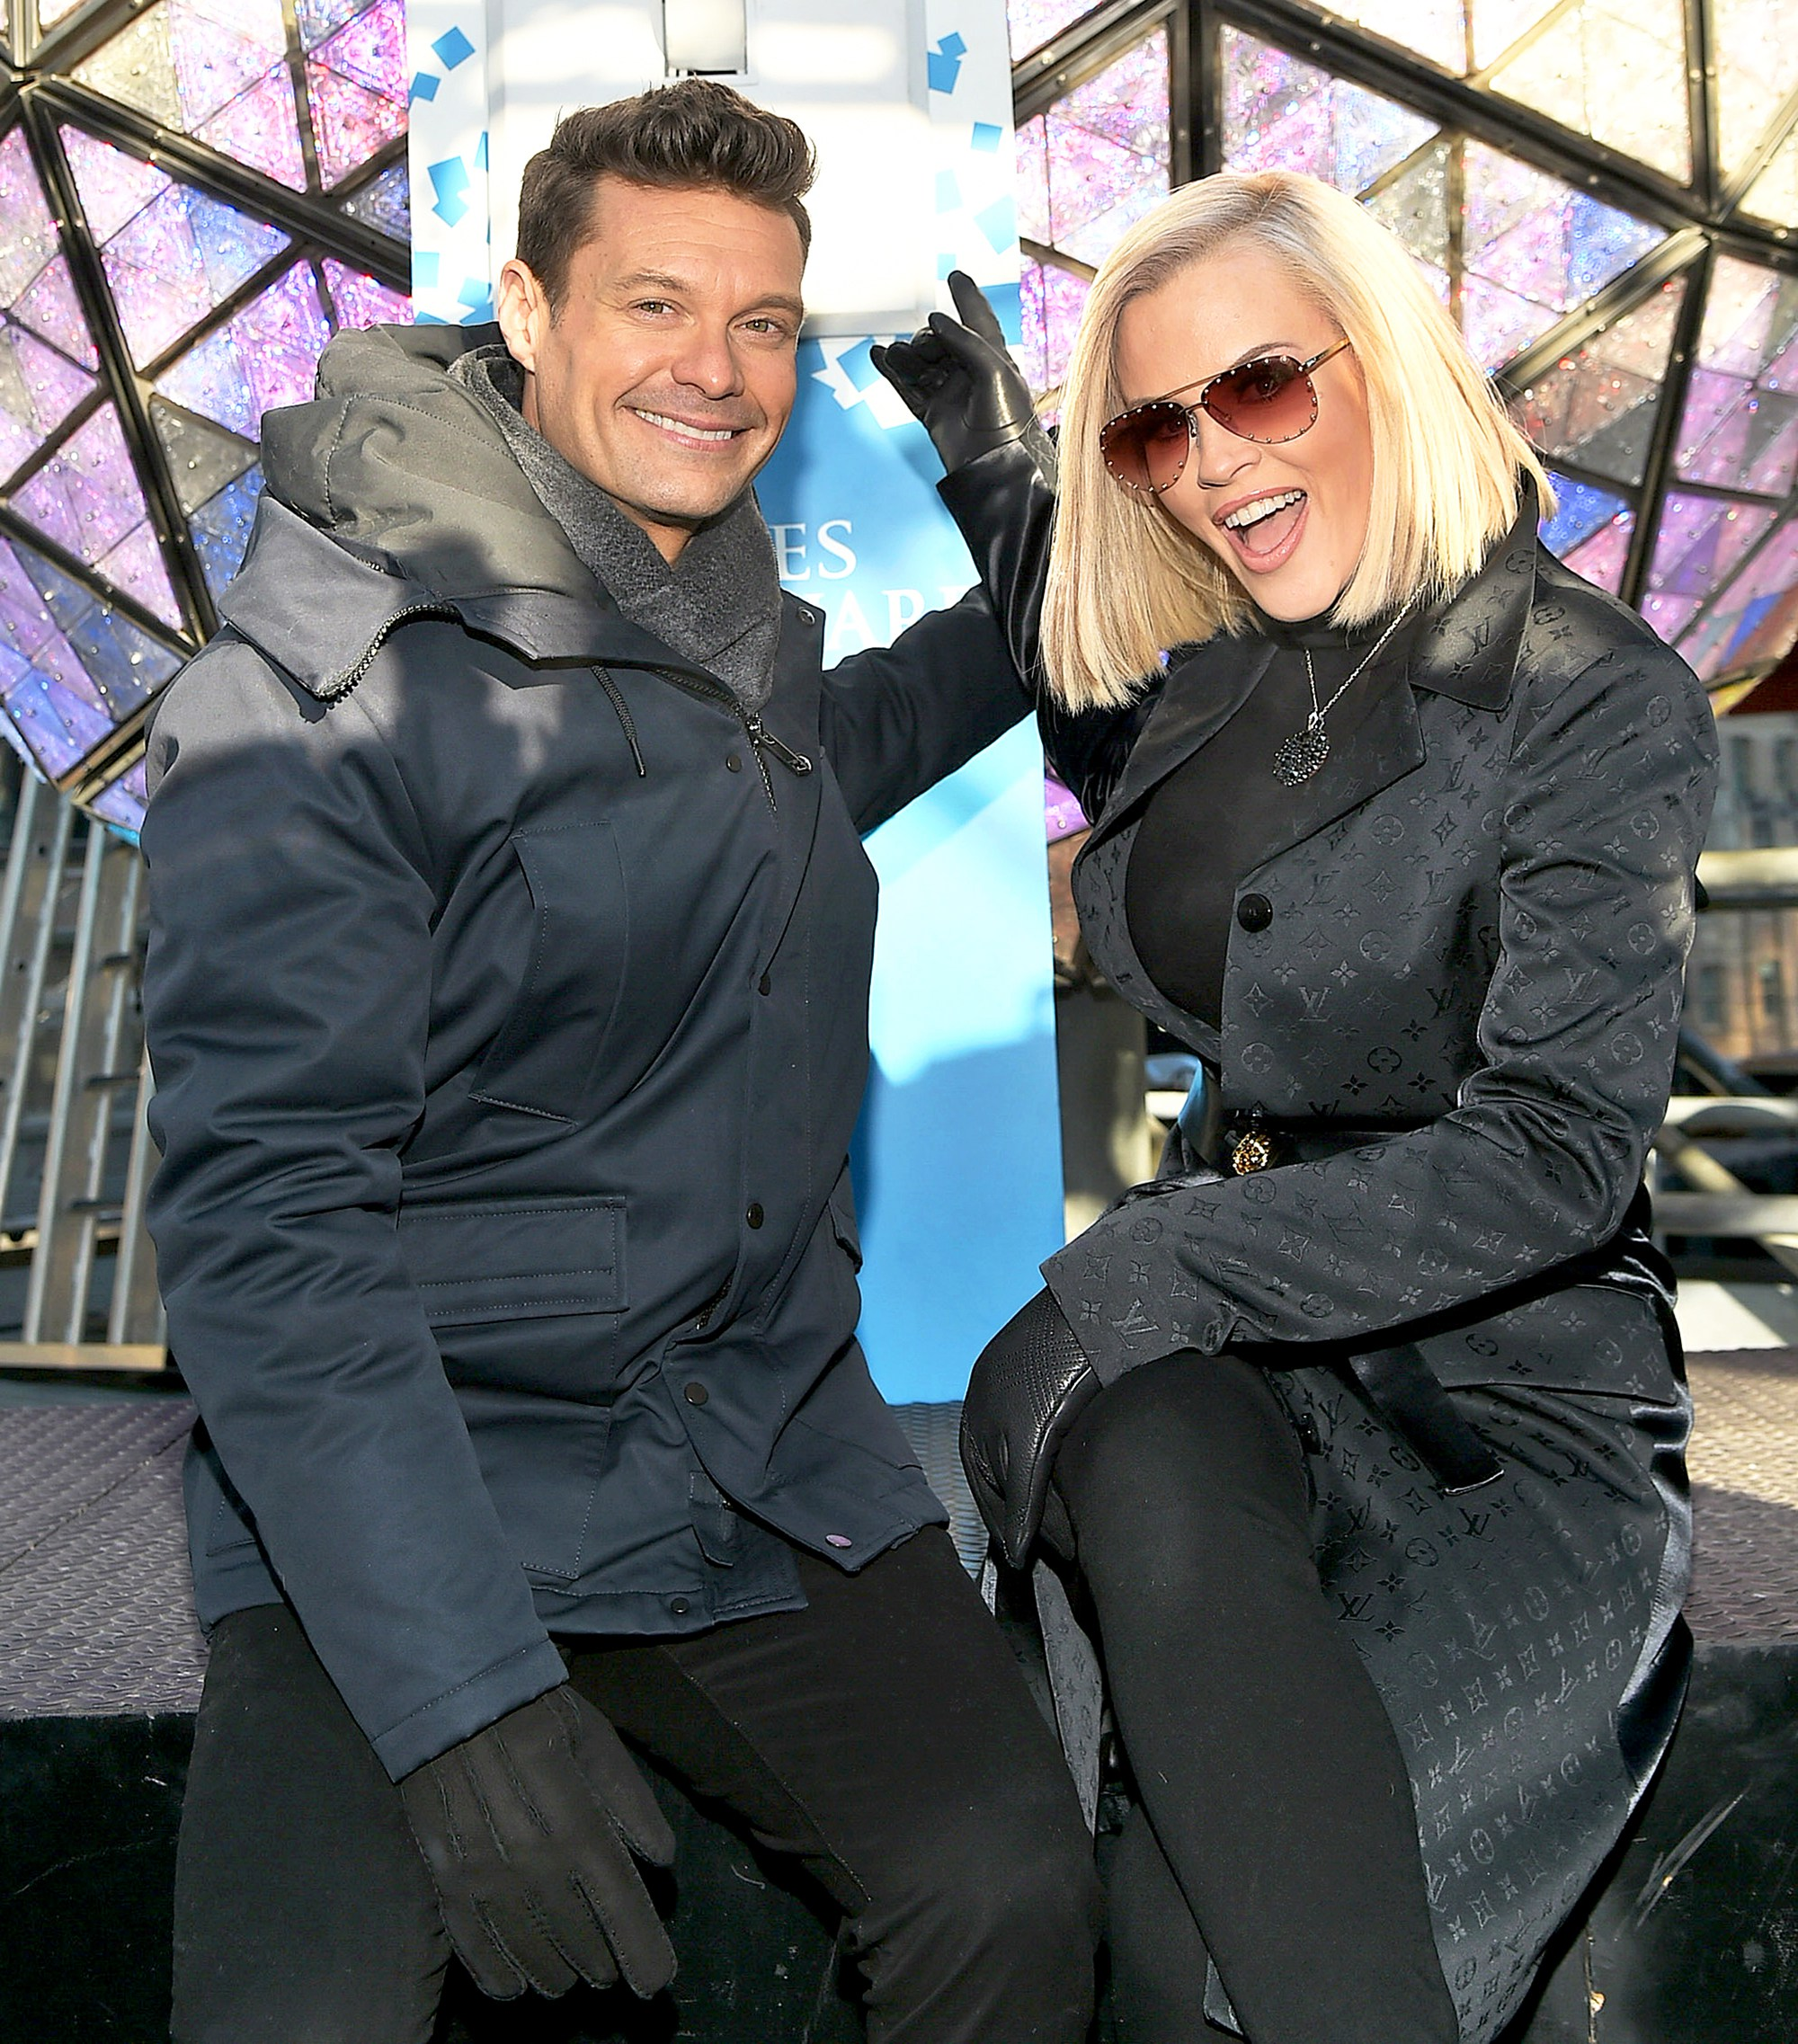 Ryan Seacrest and Jenny McCarthy attend Dick Clark's New Year's Rockin' Eve 2018 press junket at Times Square on December 29, 2017 in New York City.